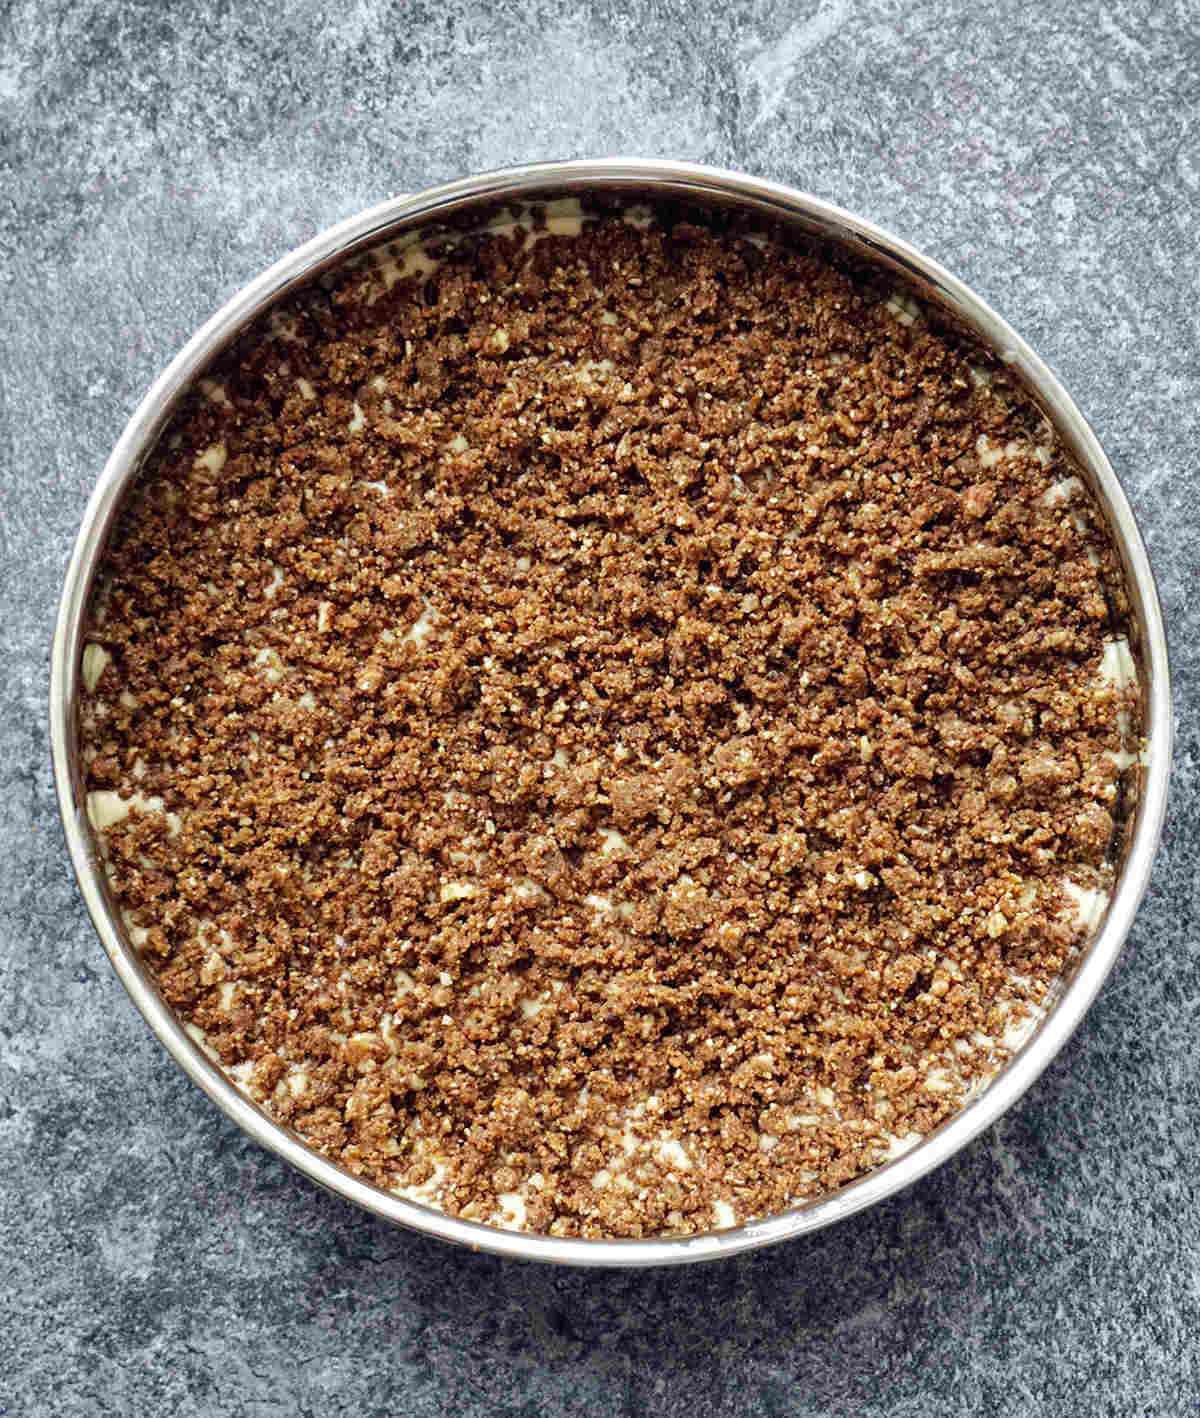 Coffee Cake Topped With Cinnamon Crumb Before Baking